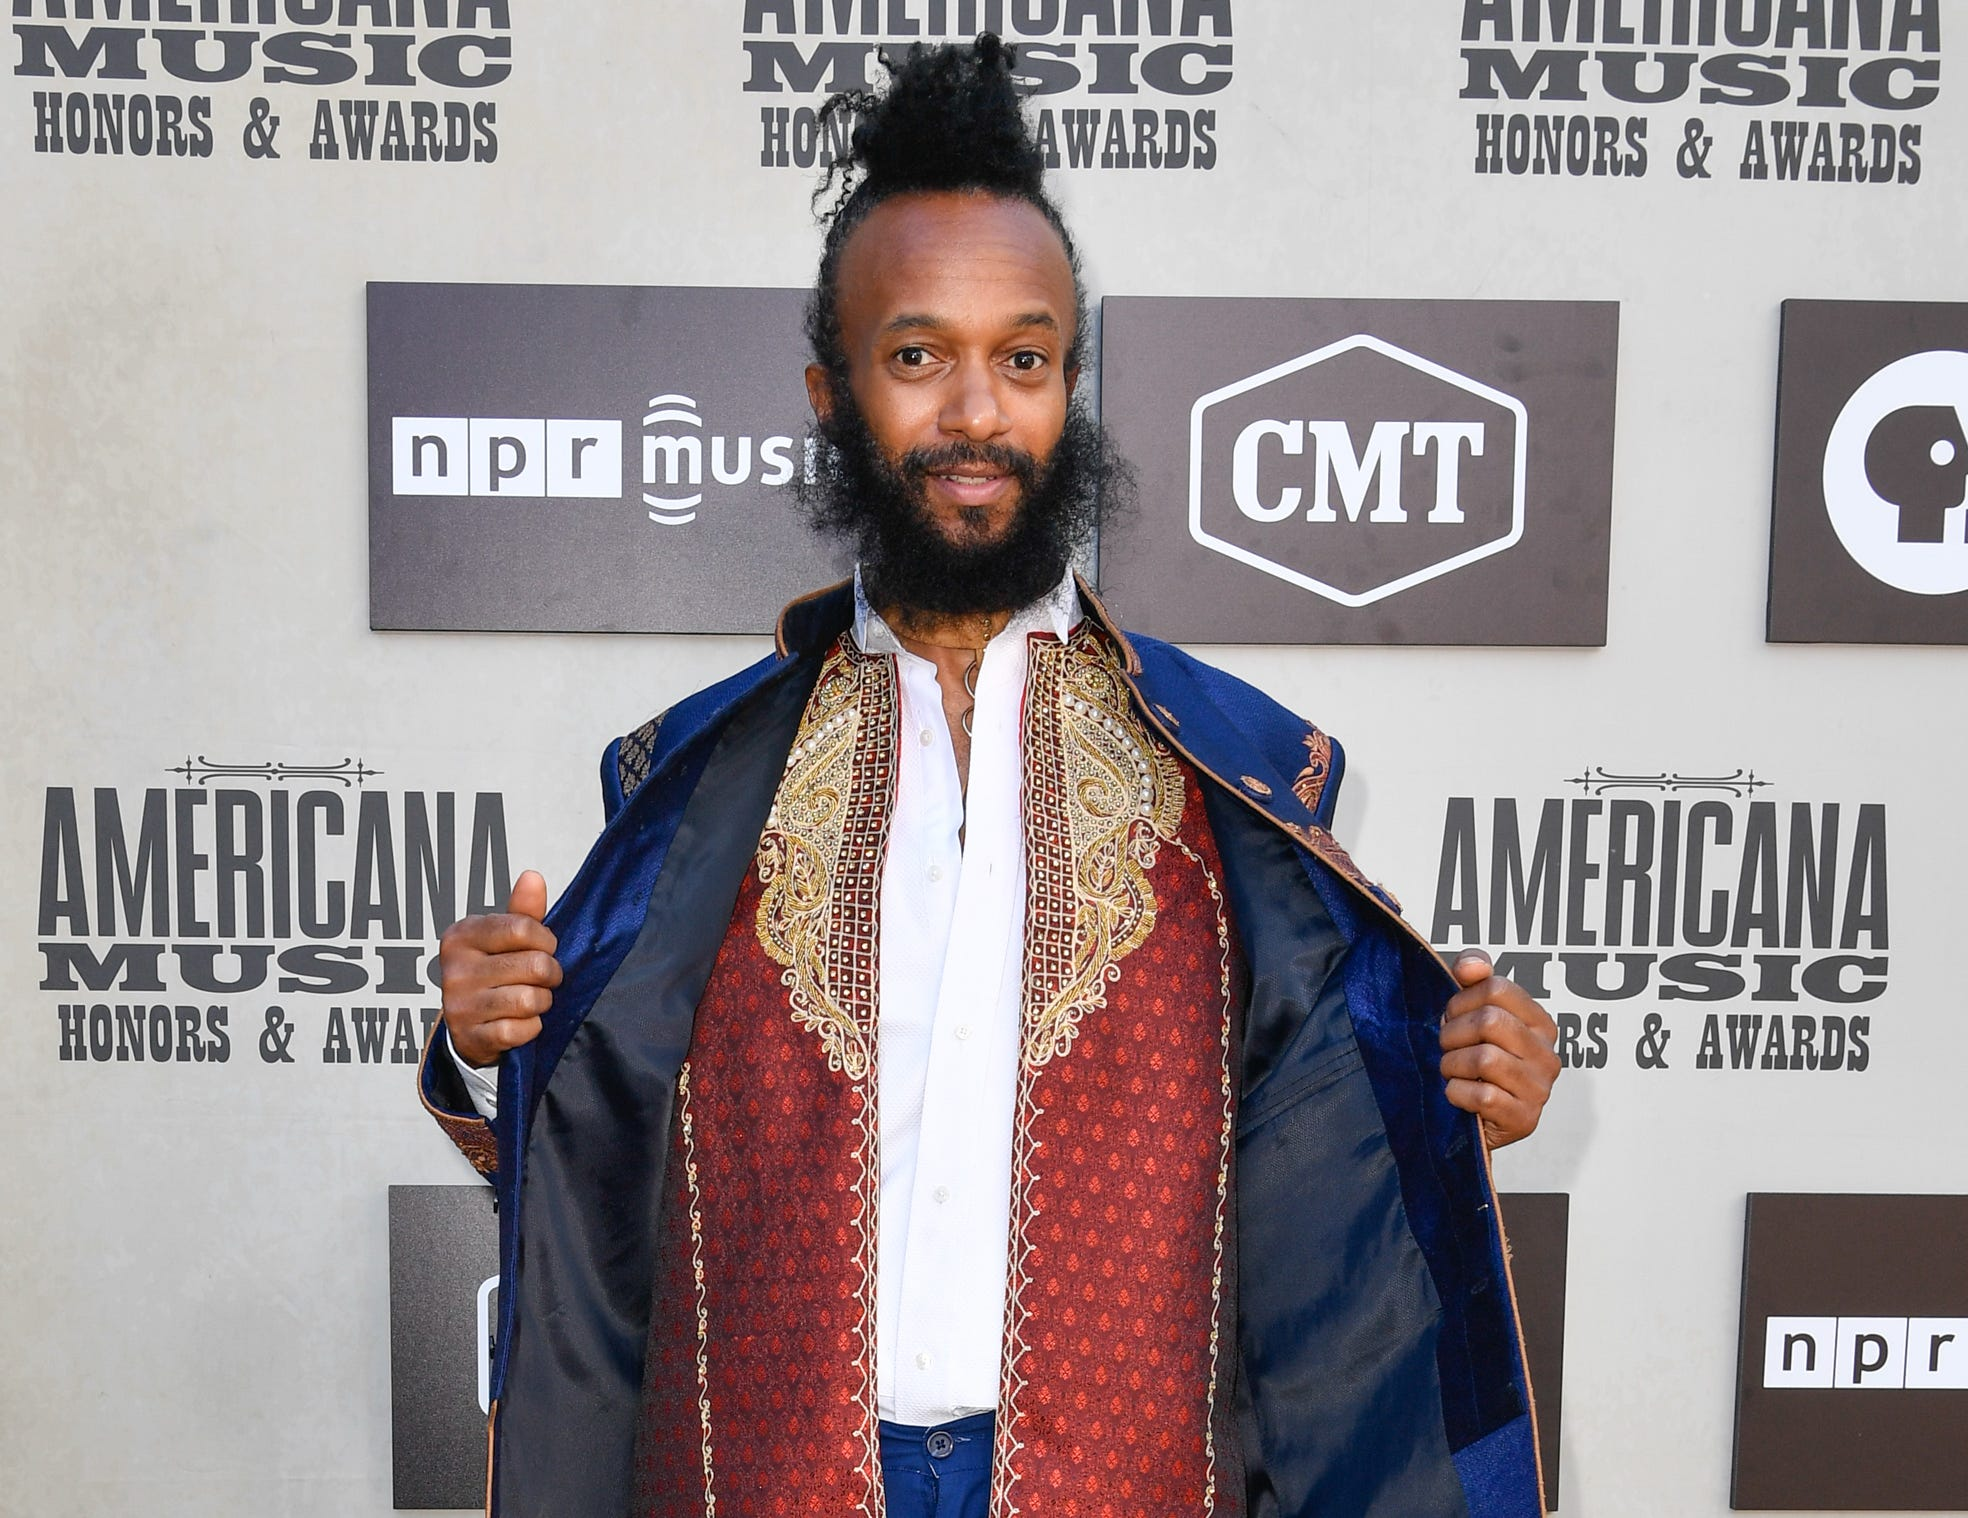 Fantastic Negrito poses on the red carpet before the 2018 Americana Honors and Awards show at the Ryman Auditorium in Nashville, Tenn., Wednesday, Sept. 12, 2018.